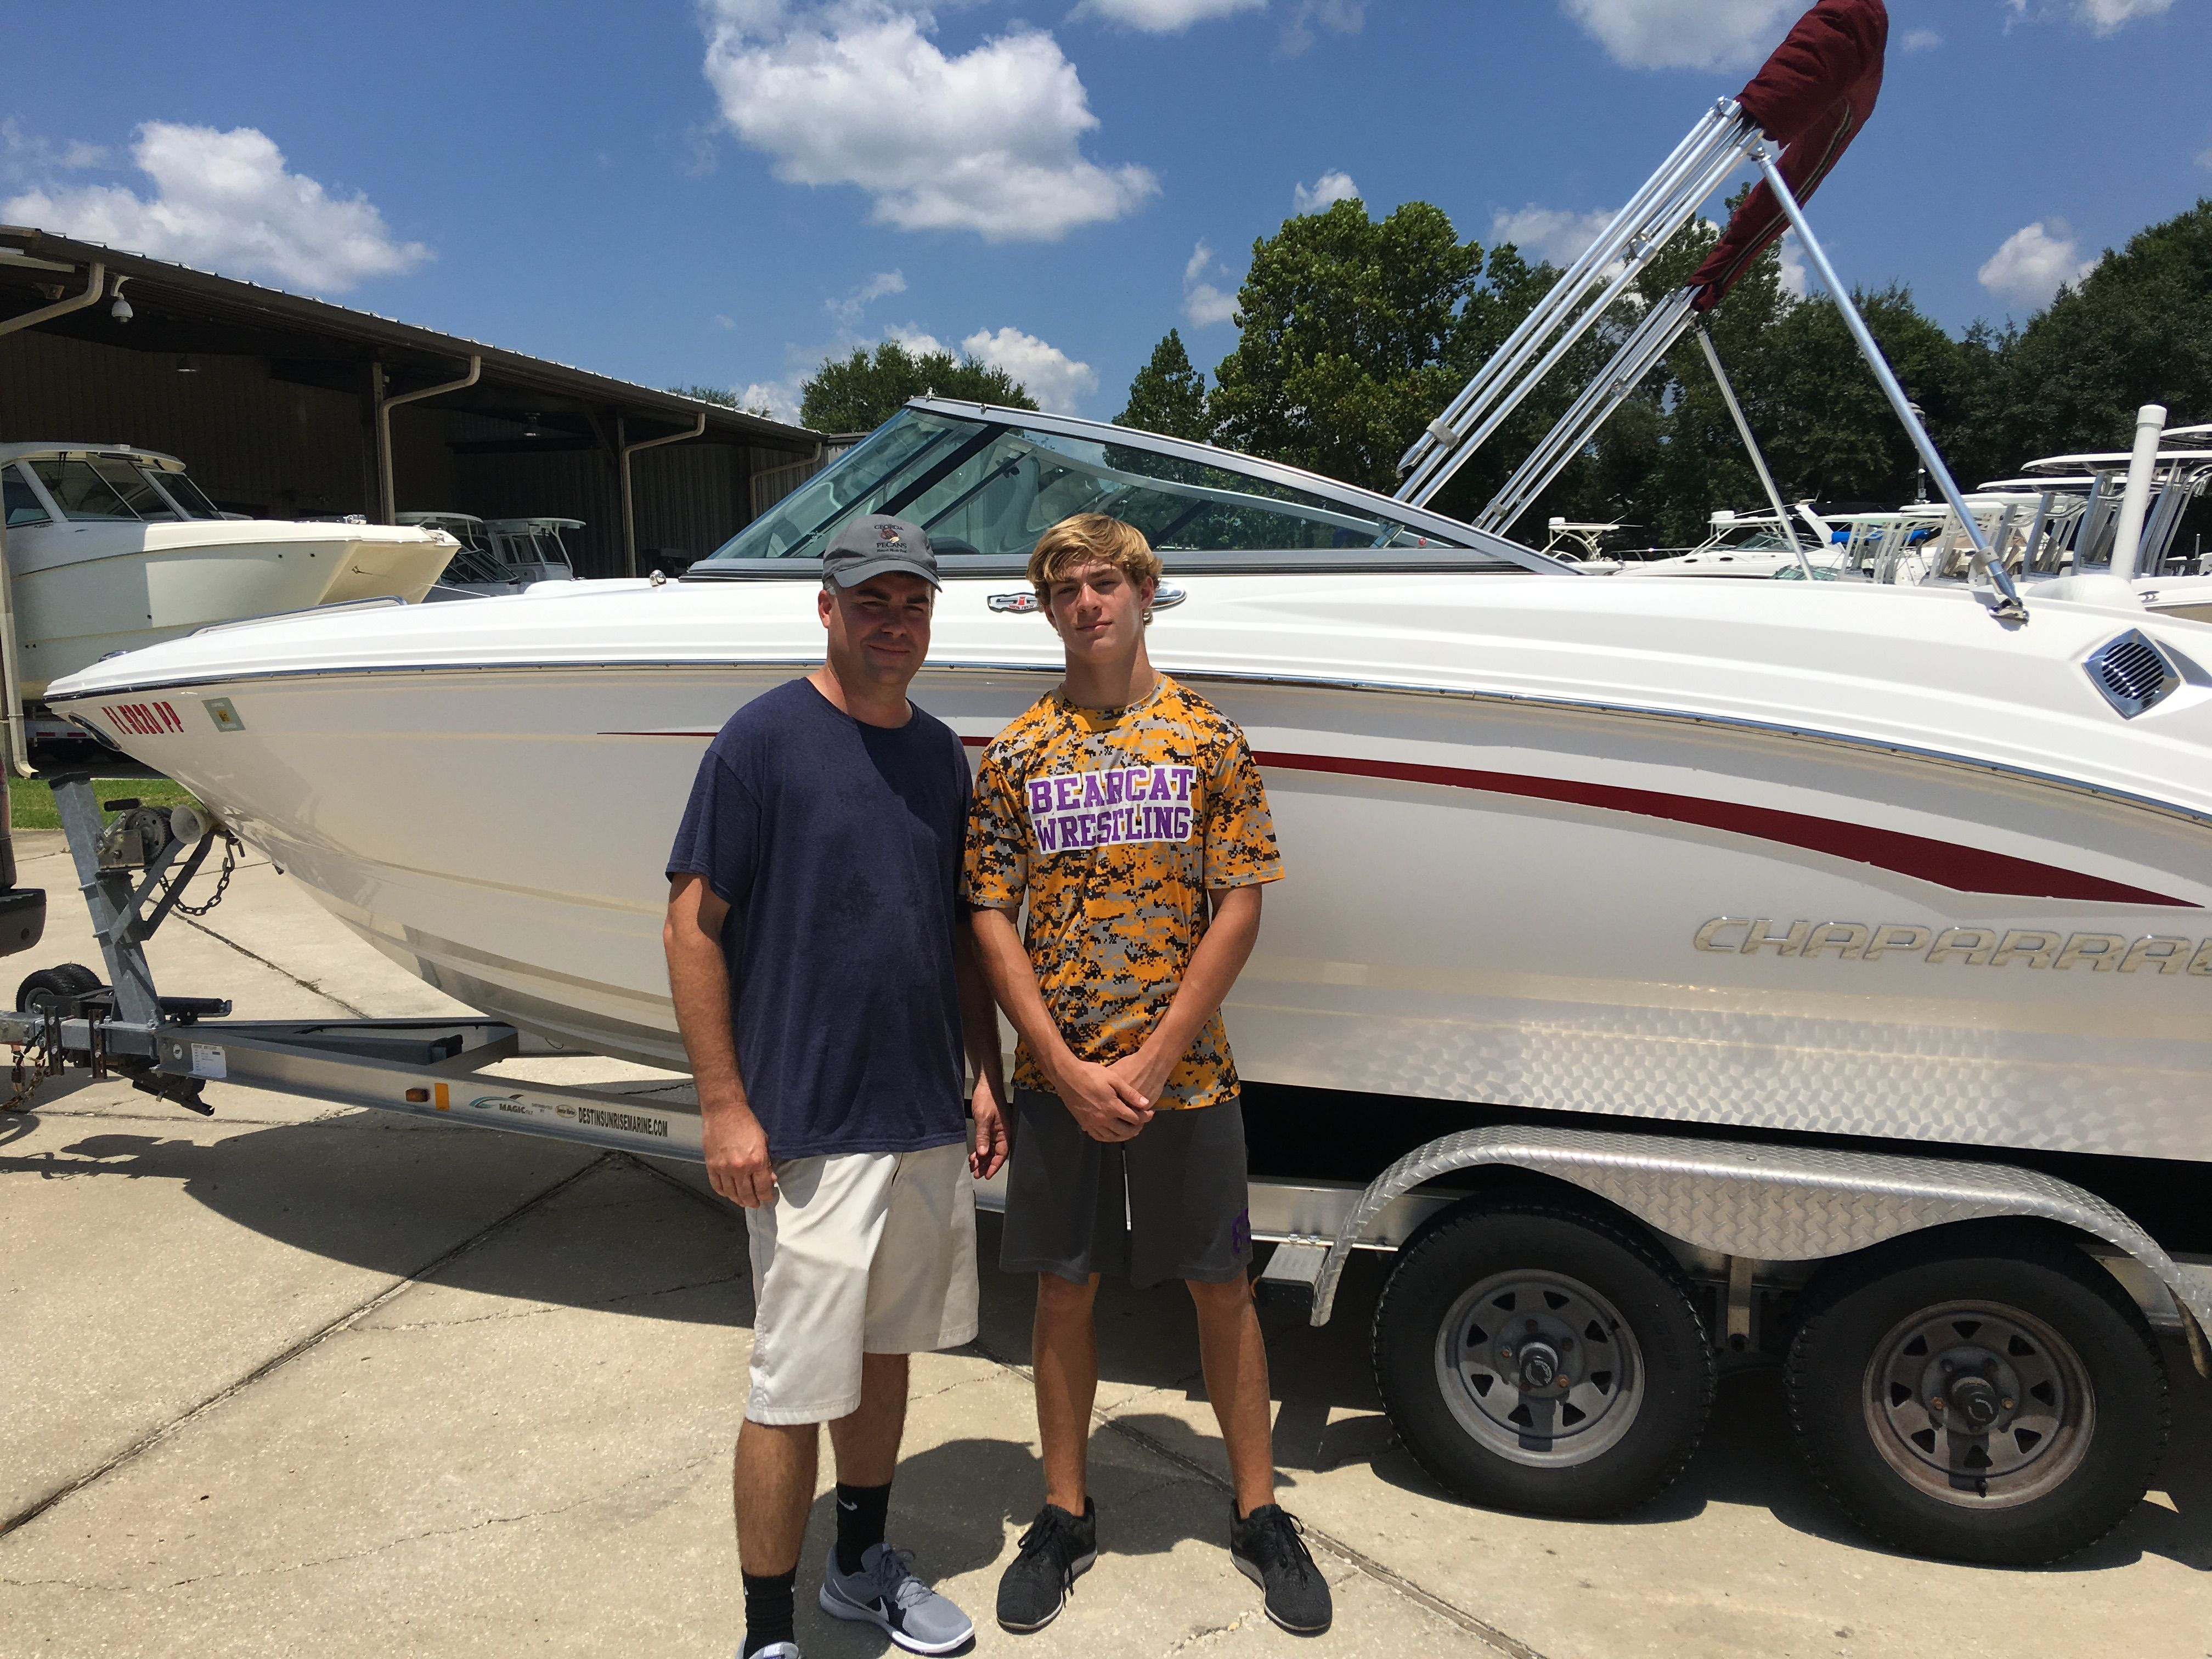 Pin by Sunrise Marine on Congratulations on your new boat